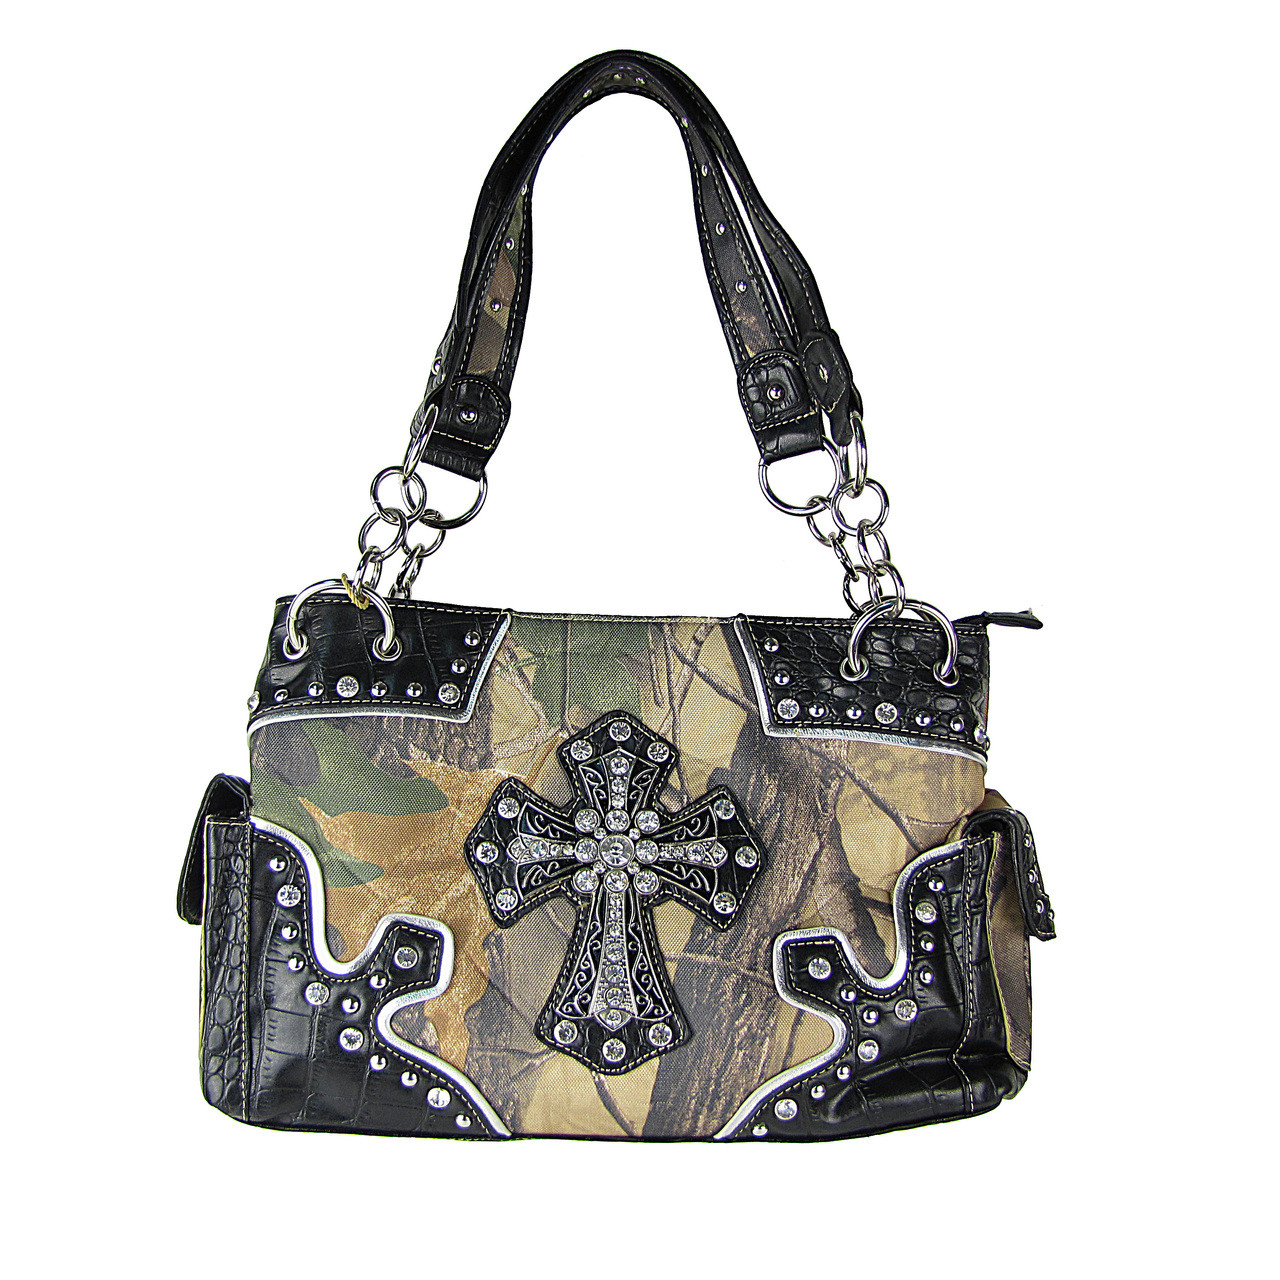 BLACK WESTERN MOSSY CAMO CROSS CONCEALED CARRY LOOK SHOULDER HANDBAG HB1-HC393-1BLK